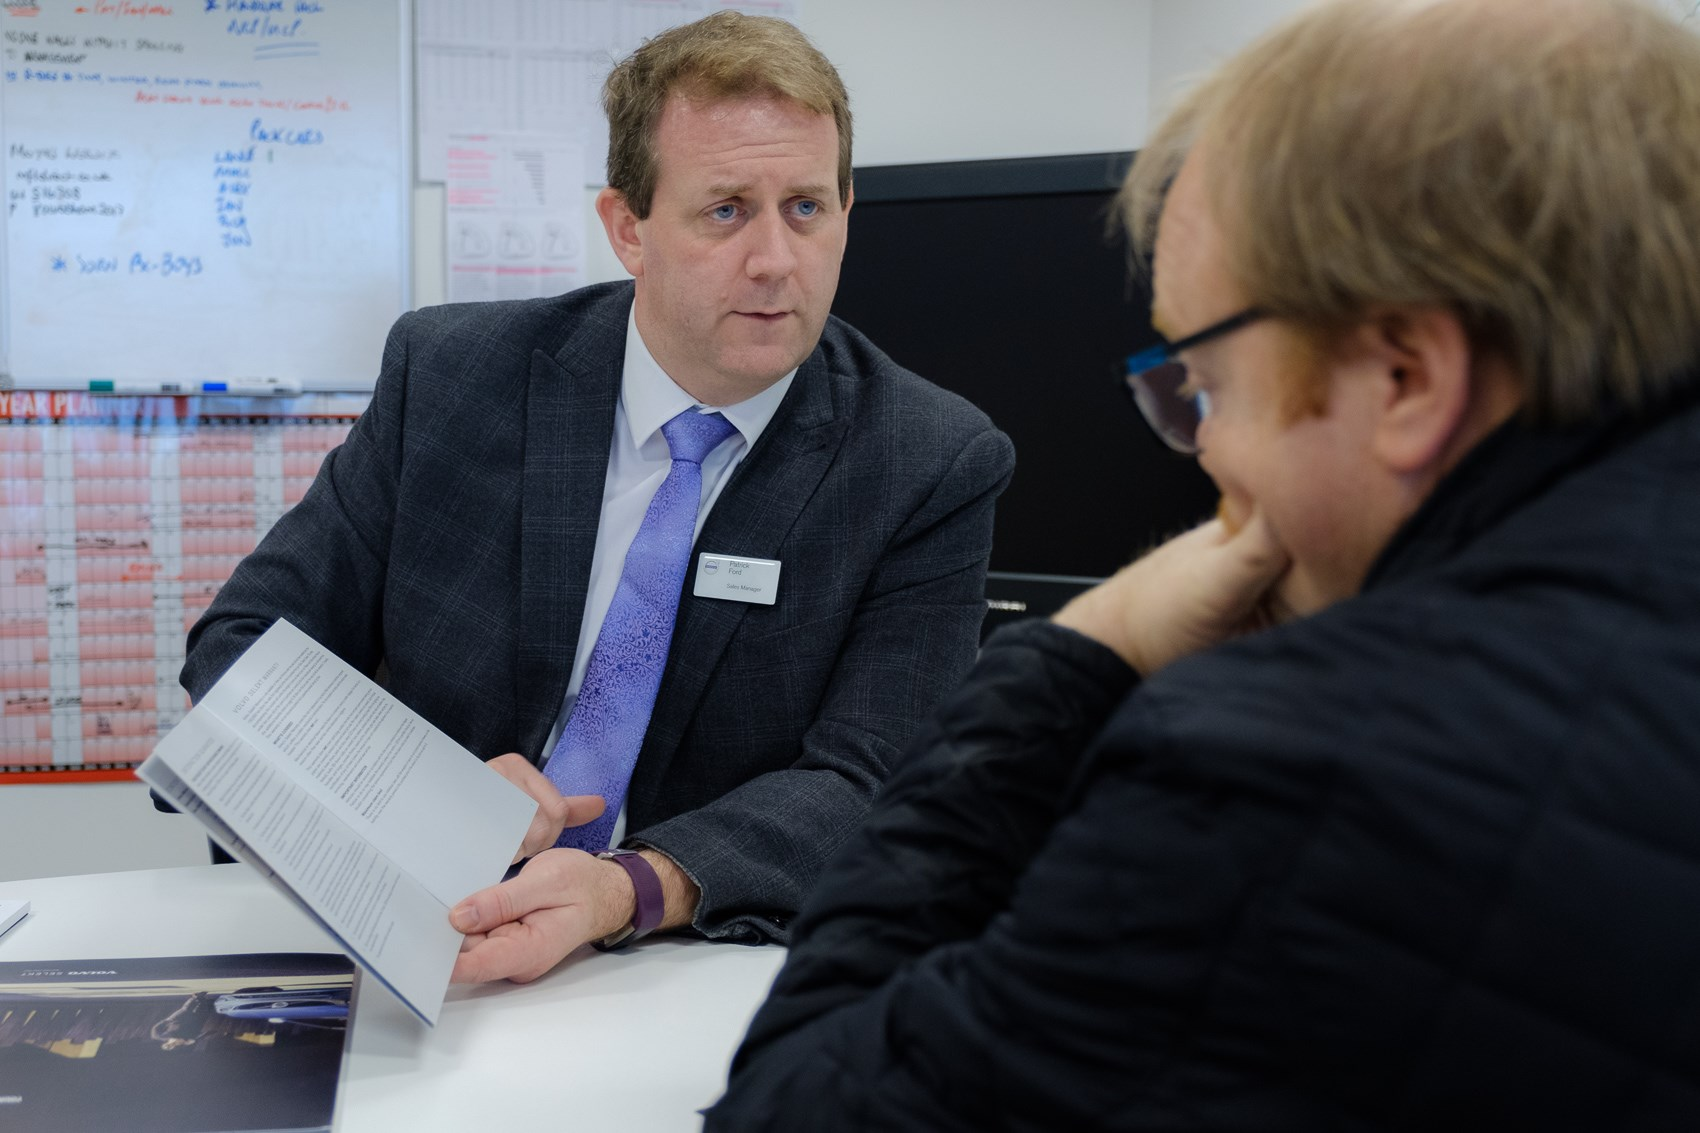 Patrick Ford of Paul Rigby Volvo explains the Selekt programme to Parkers Editor Keith Adams